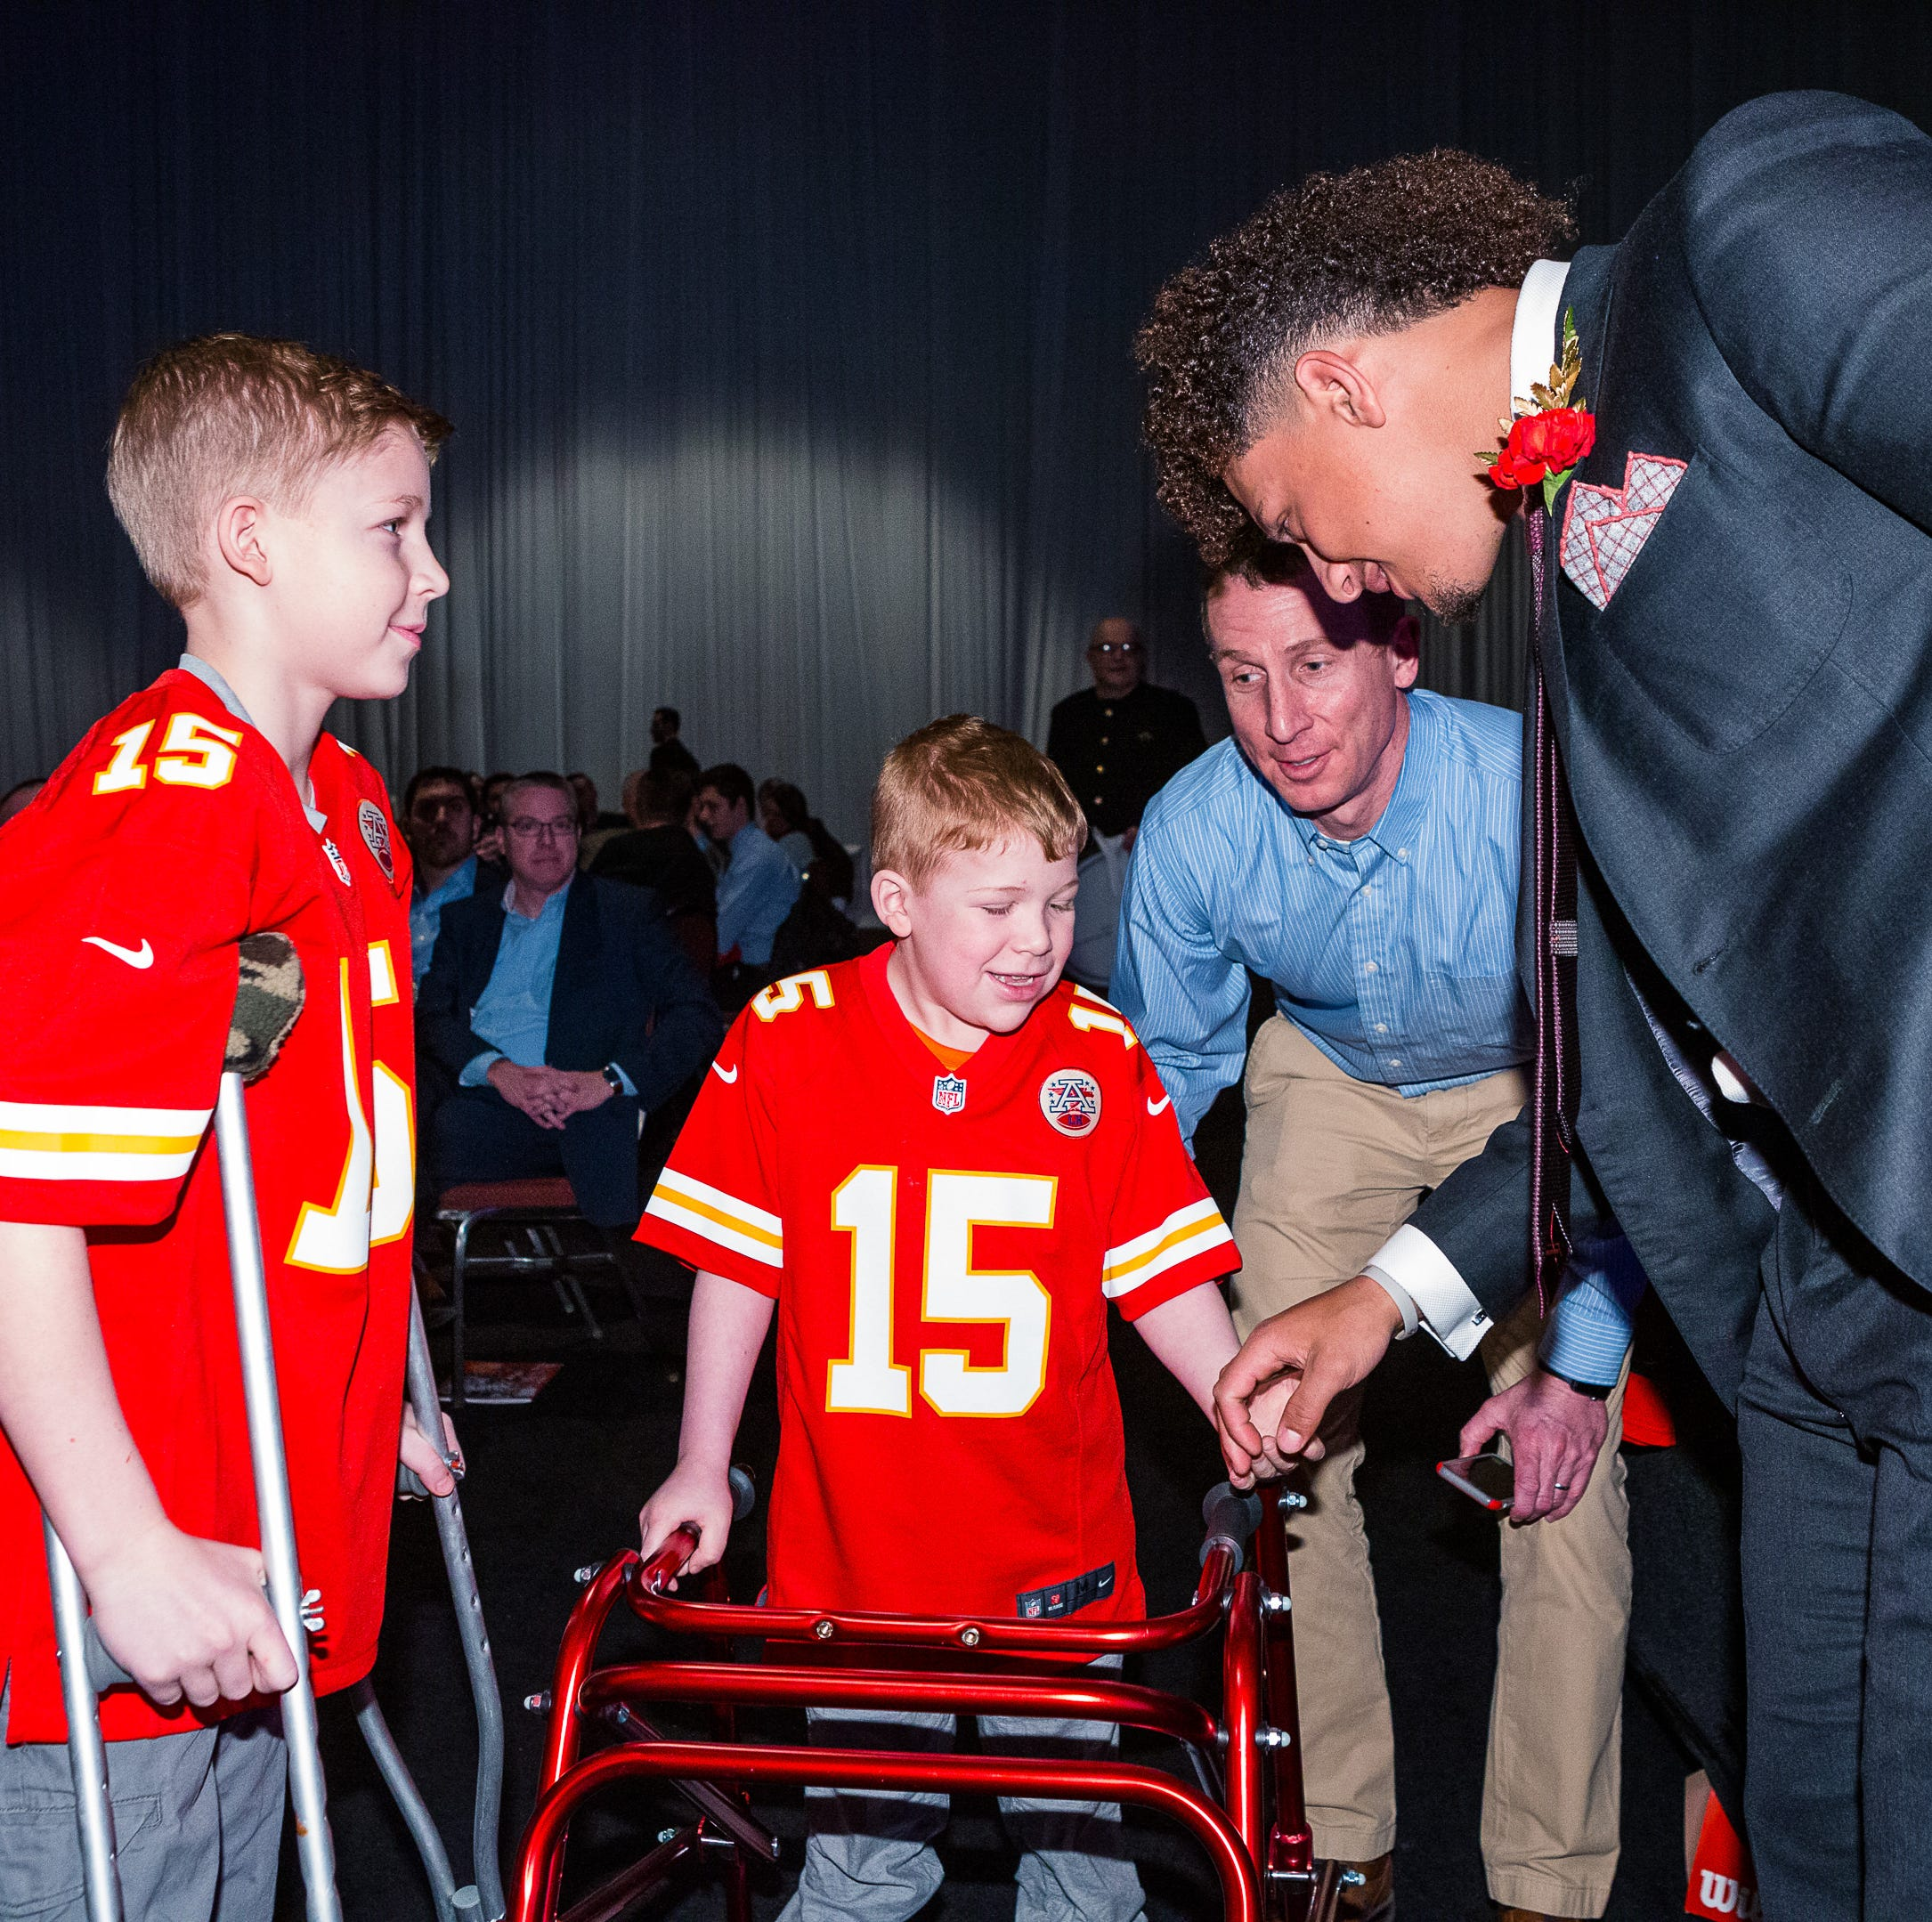 Kansas City Chiefs quarterback Patrick Mahomes to announce exclusive Hy-Vee partnership at event in Des Moines